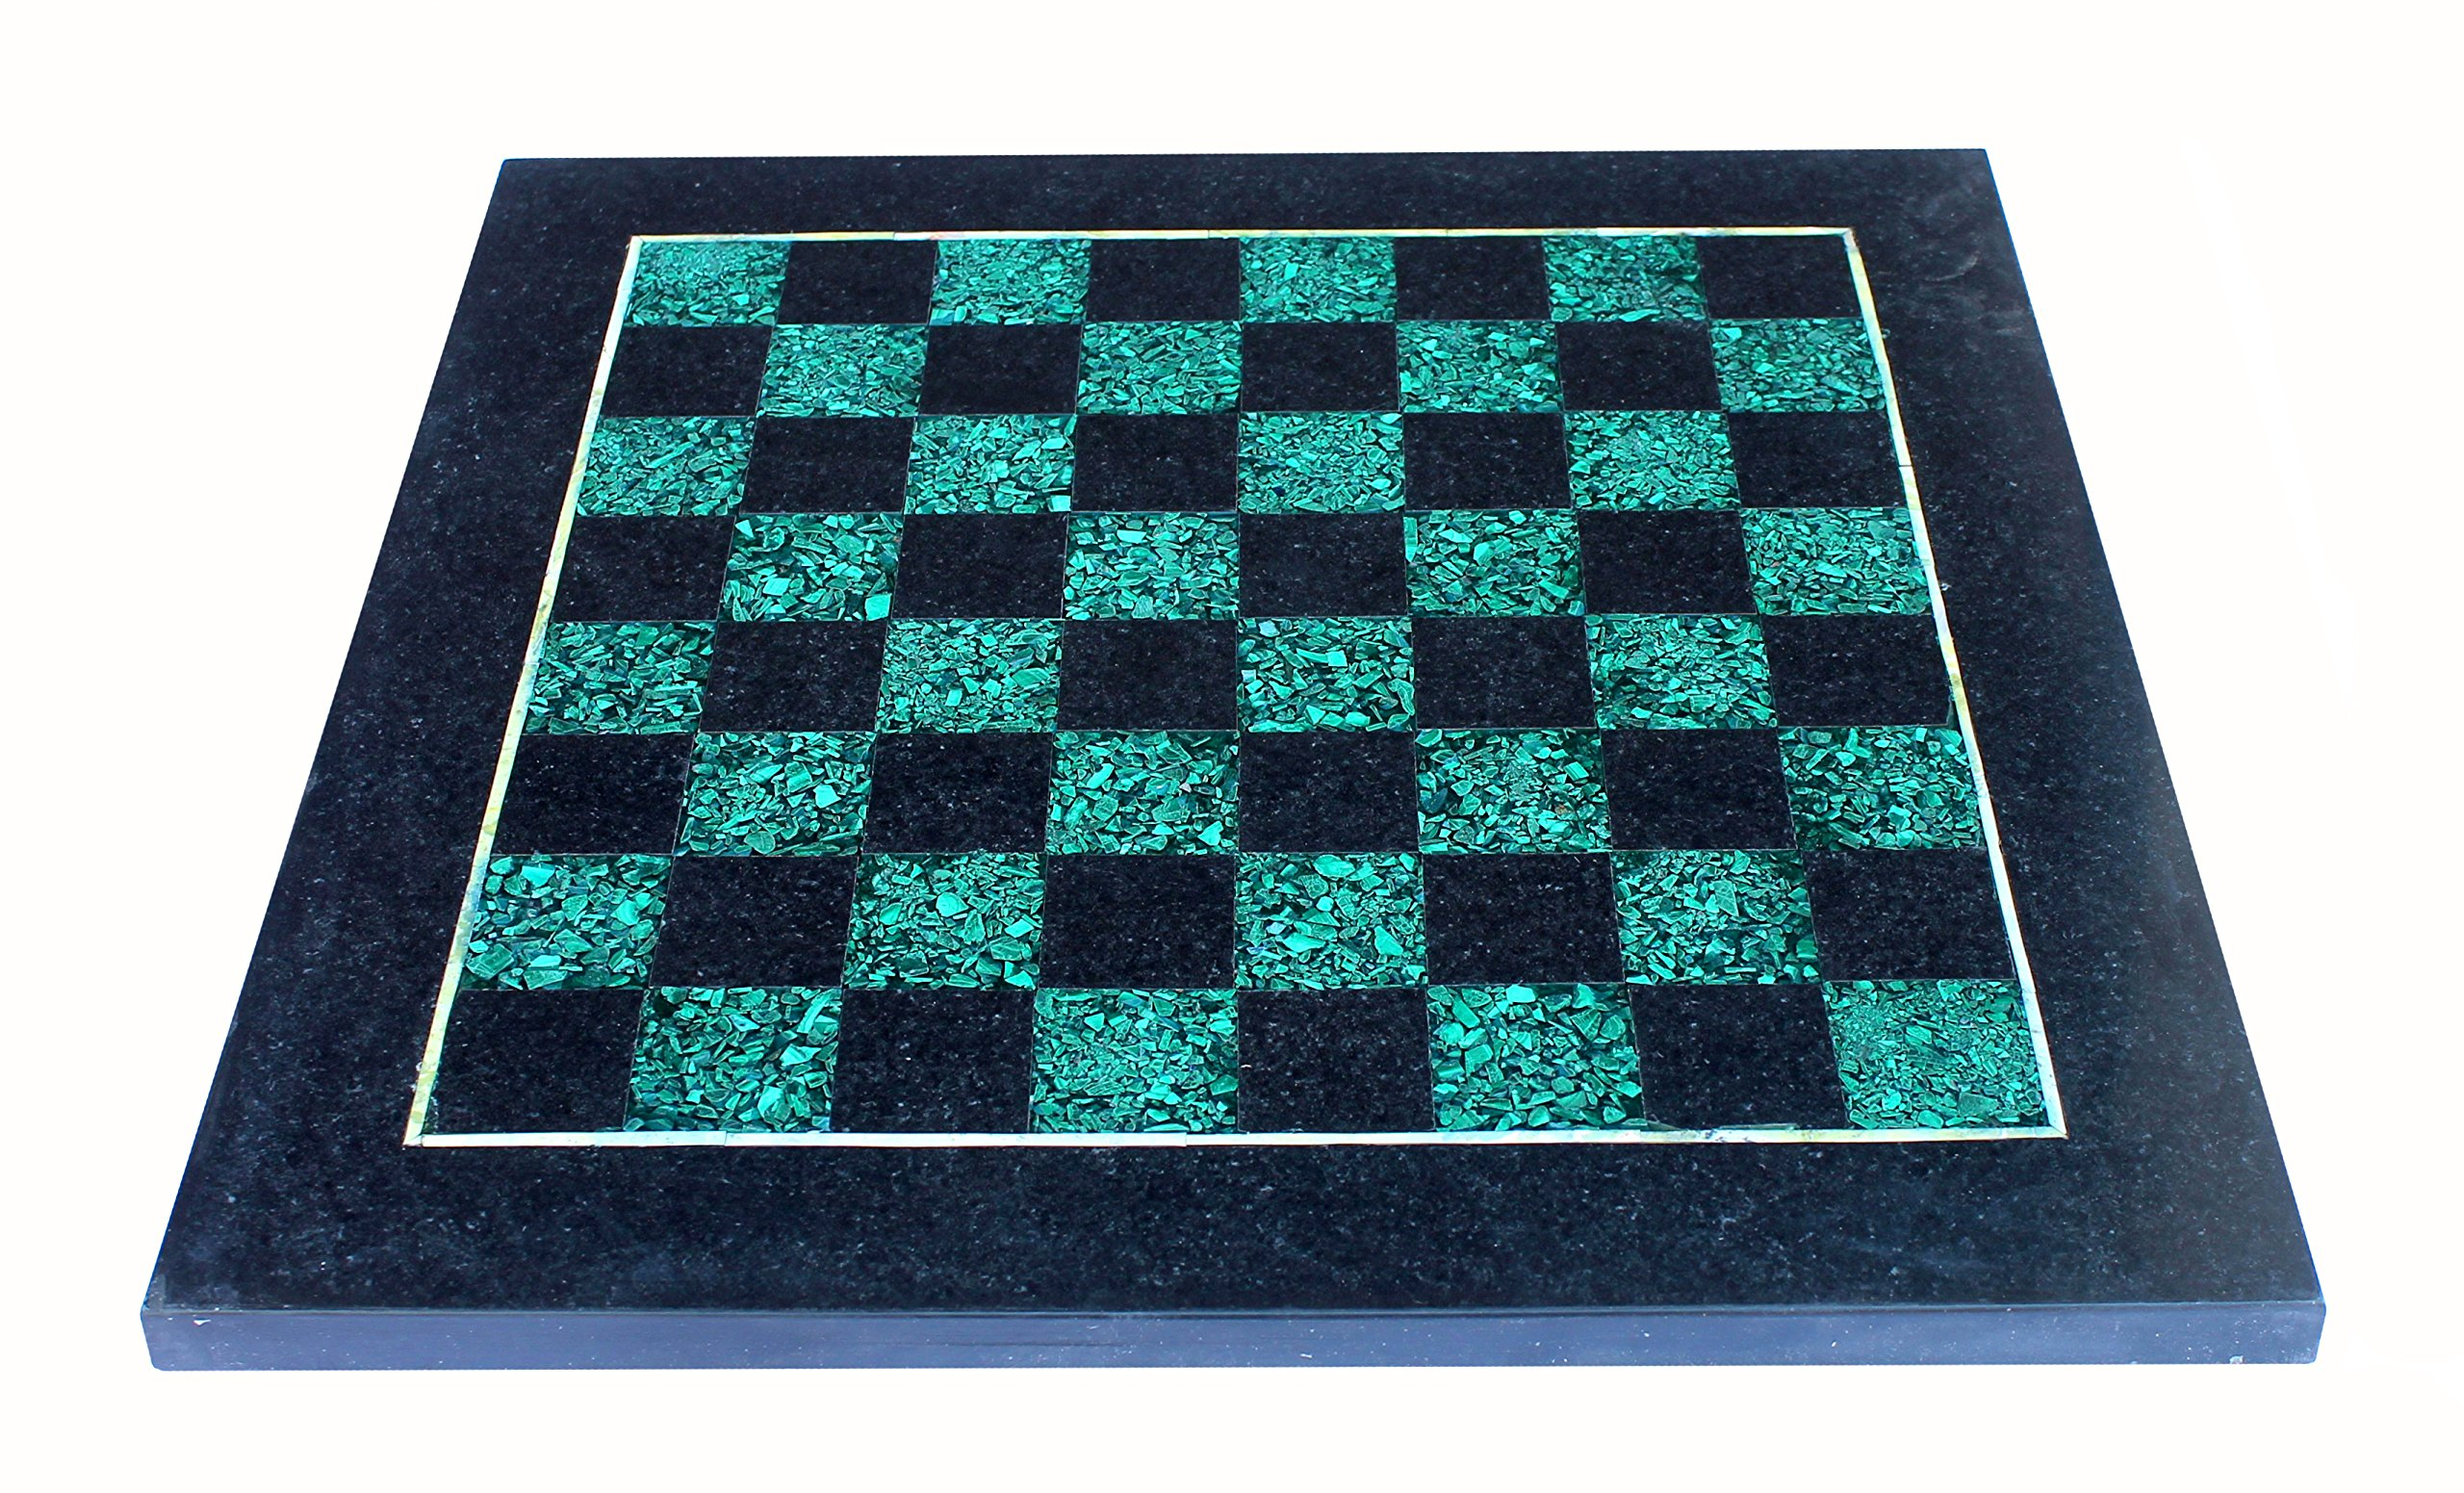 StonKraft 15'' X 15'' Collectible Black Natural Stone + Malachite & Marble Chess Board Without Pieces - Appropriate Wooden & Brass Chess Pieces Chessmen separately availabe by StonKraft Brand by StonKraft (Image #2)